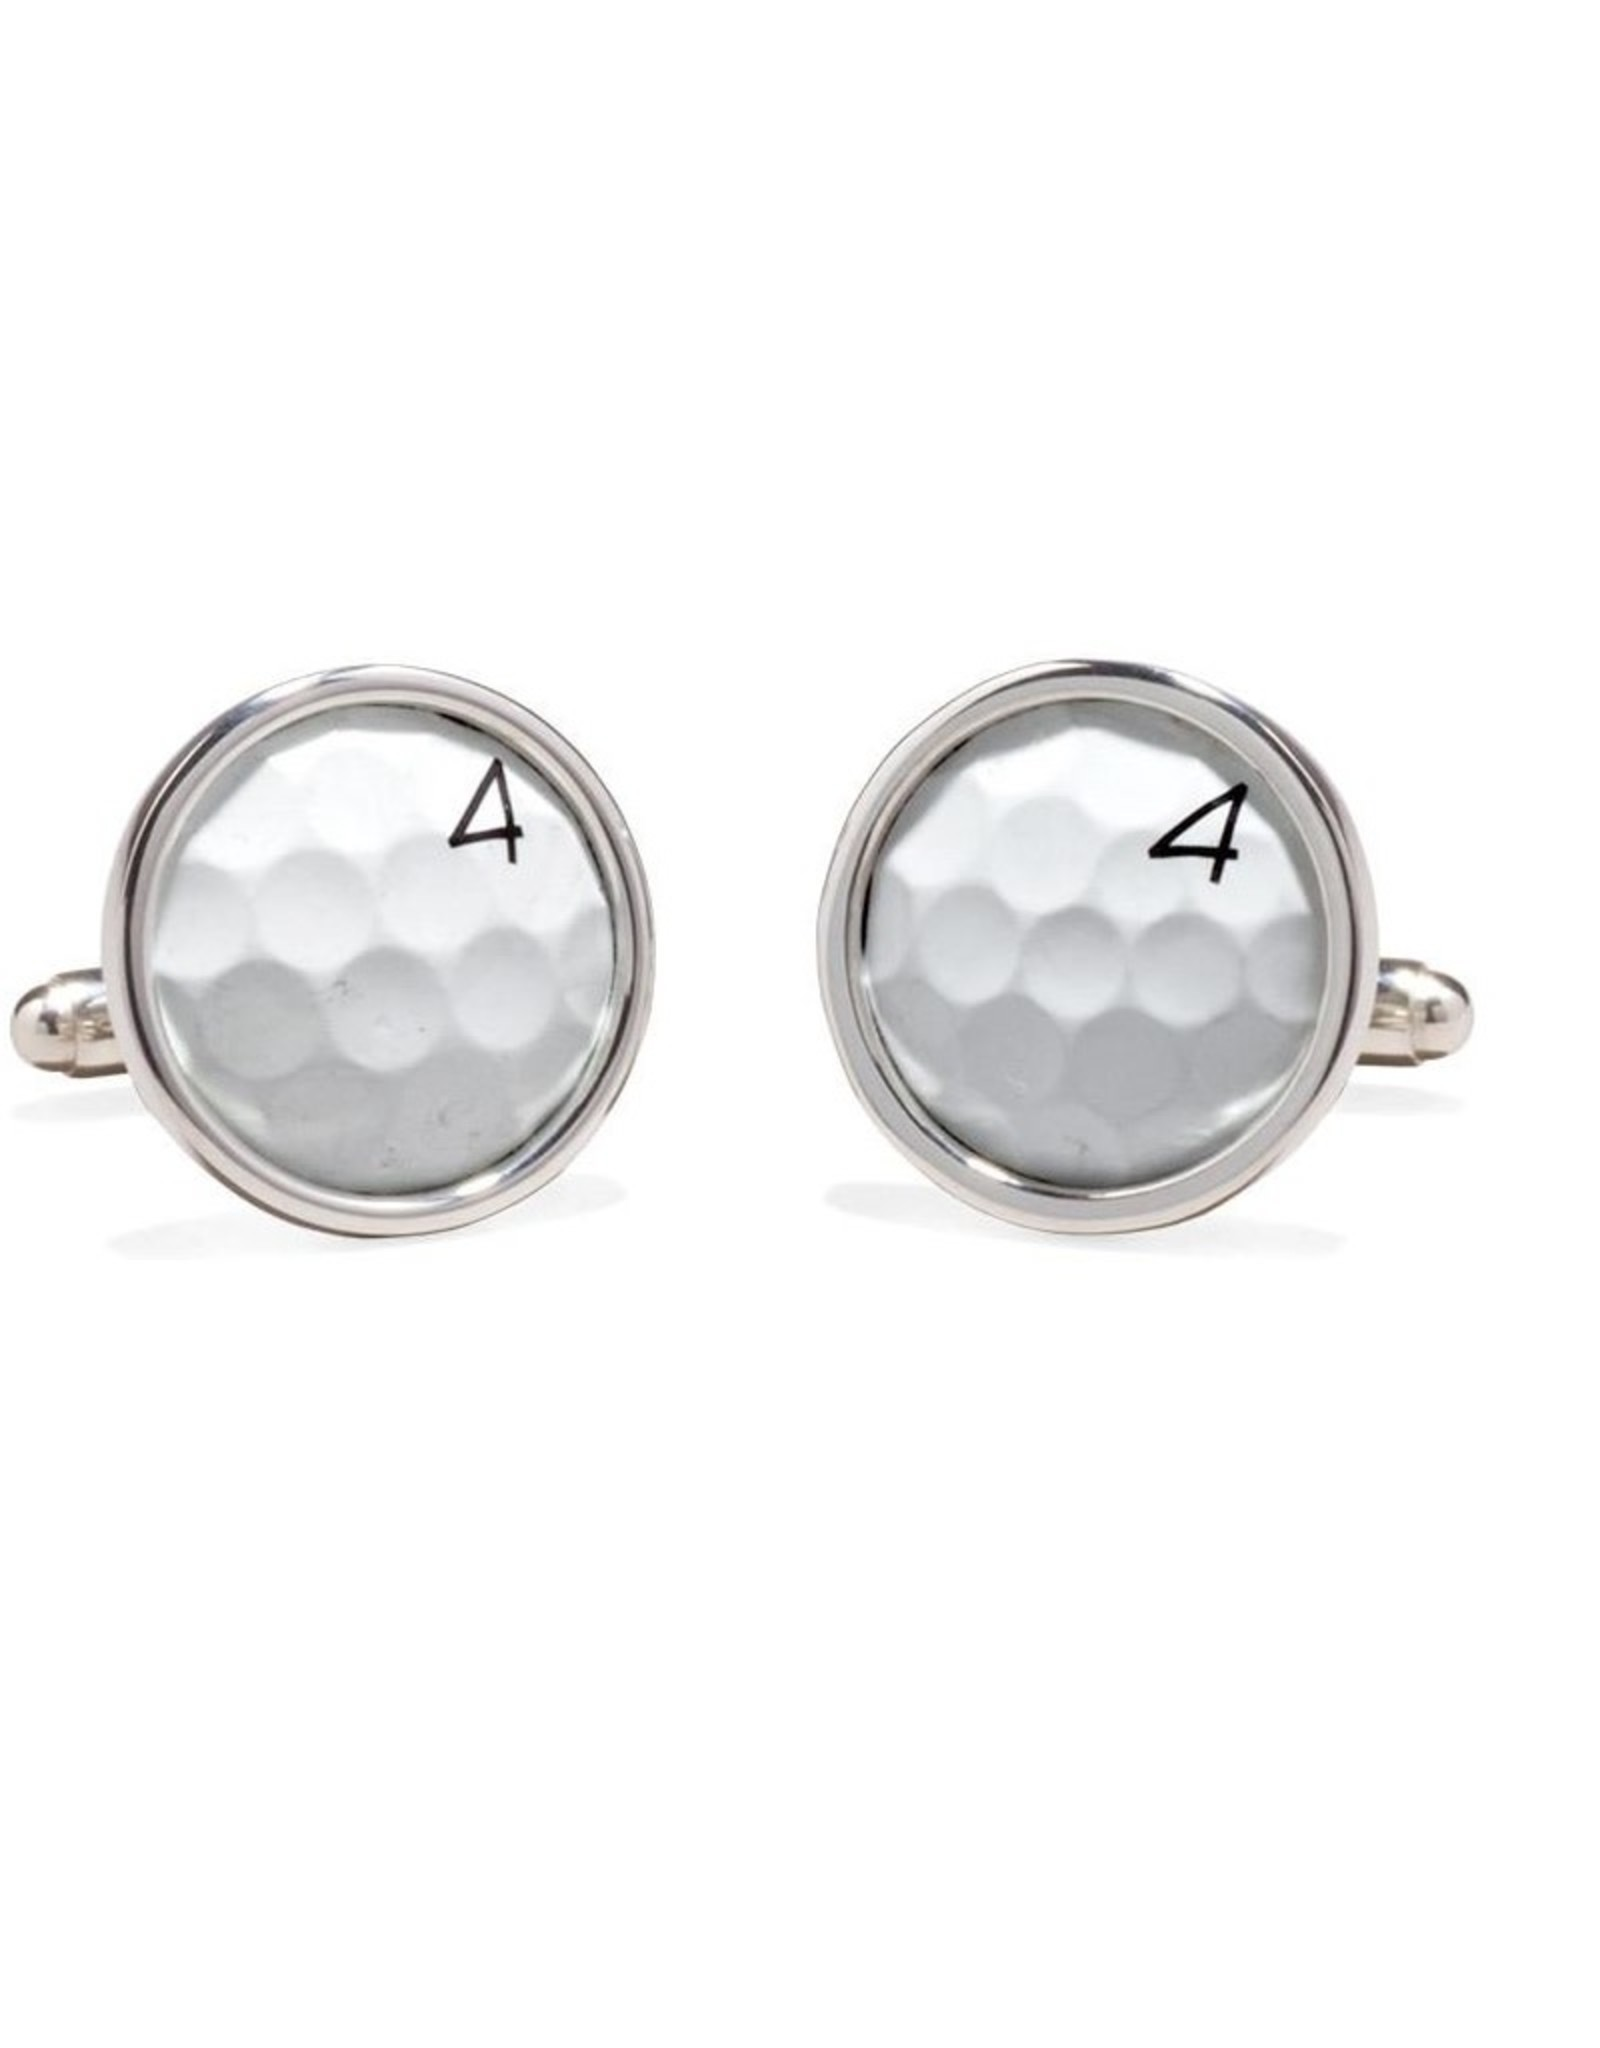 Tokens & Icons Sawgrass Golf Ball Cuff Links